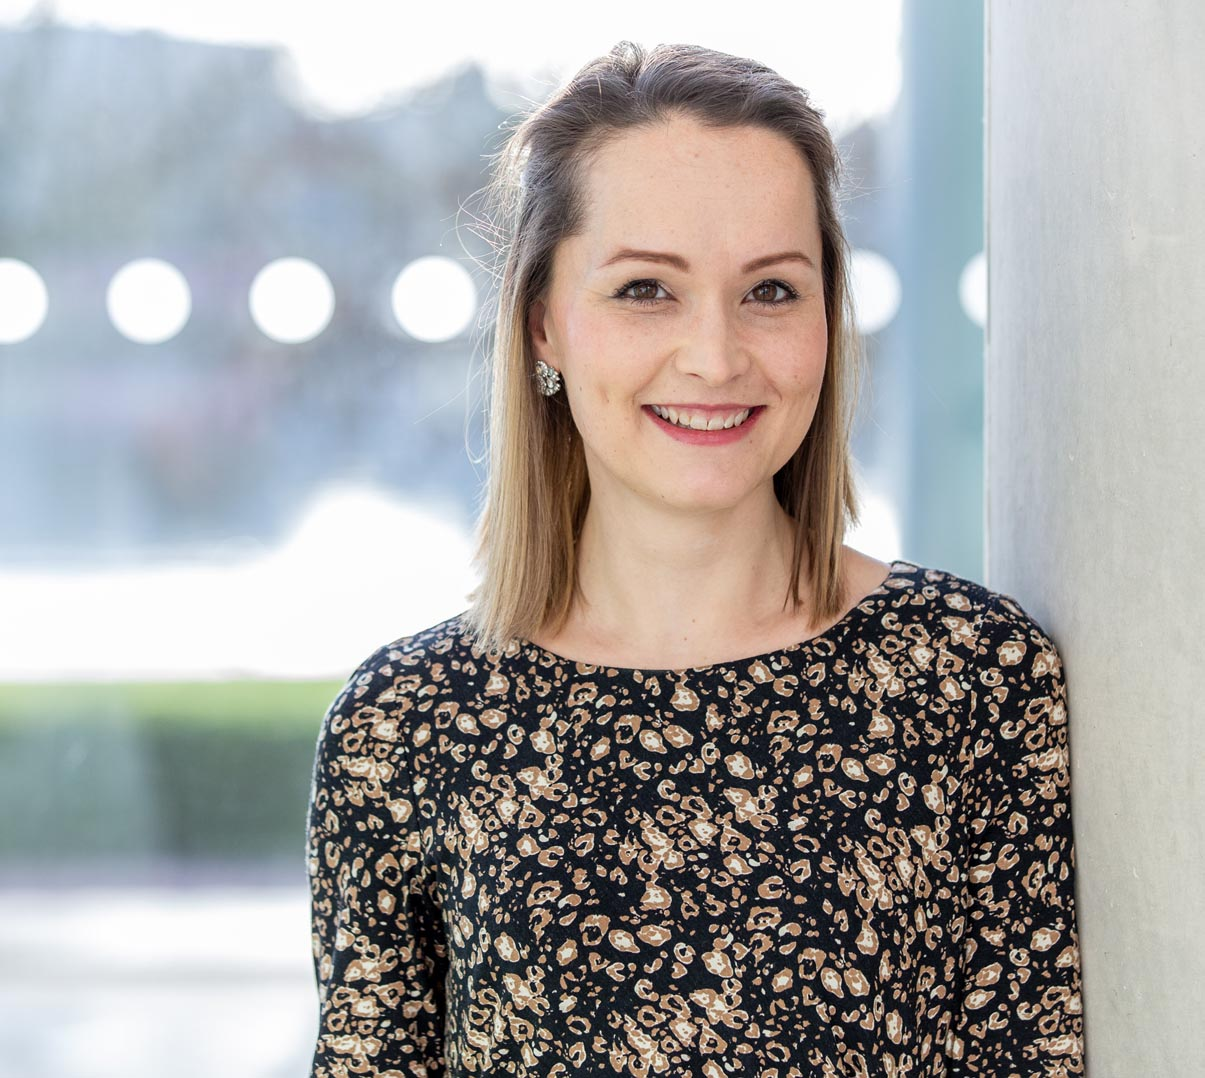 Bethan Cooke, Partner at Acuity Law & Head of Acuity Counsel Service